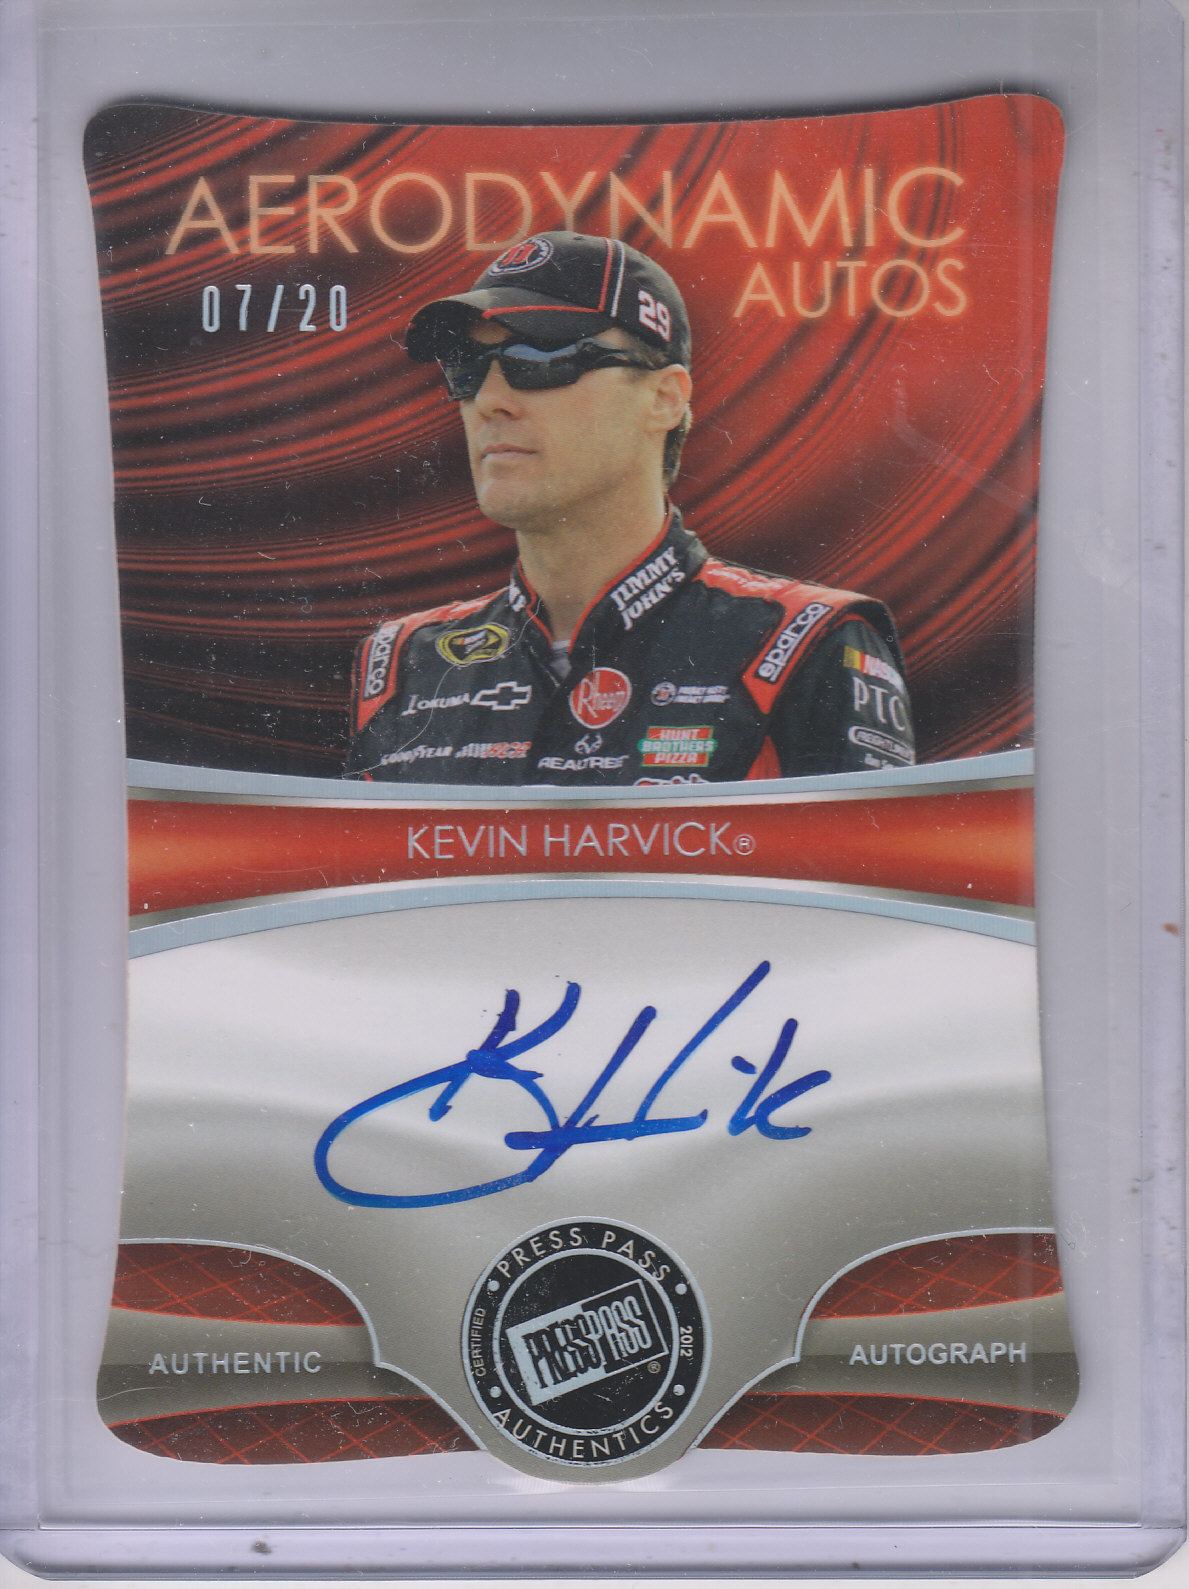 2013 Press Pass Aerodynamic Autographs Holofoil #KH Kevin Harvick/20